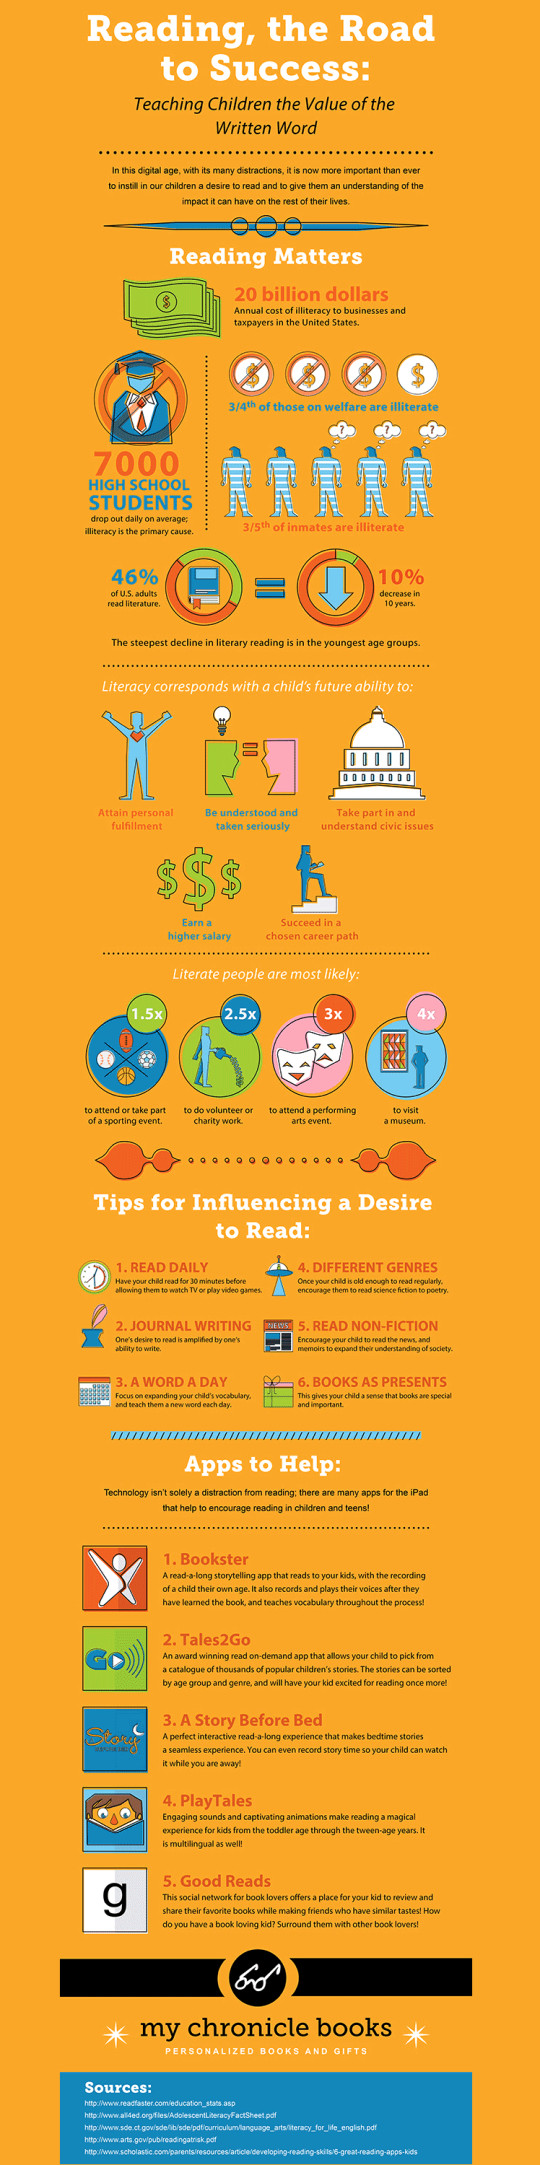 Reading is the road to success - infographic